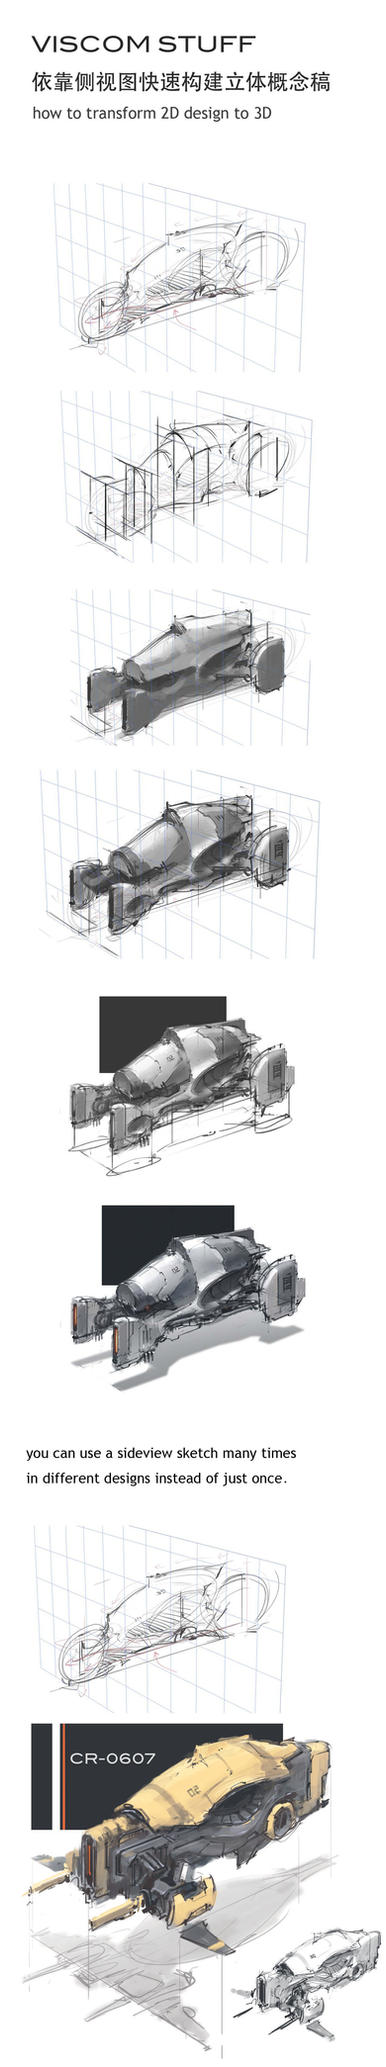 TUTORIAL transport CARS - MOTORS on Drawing-tutorial - DeviantArt